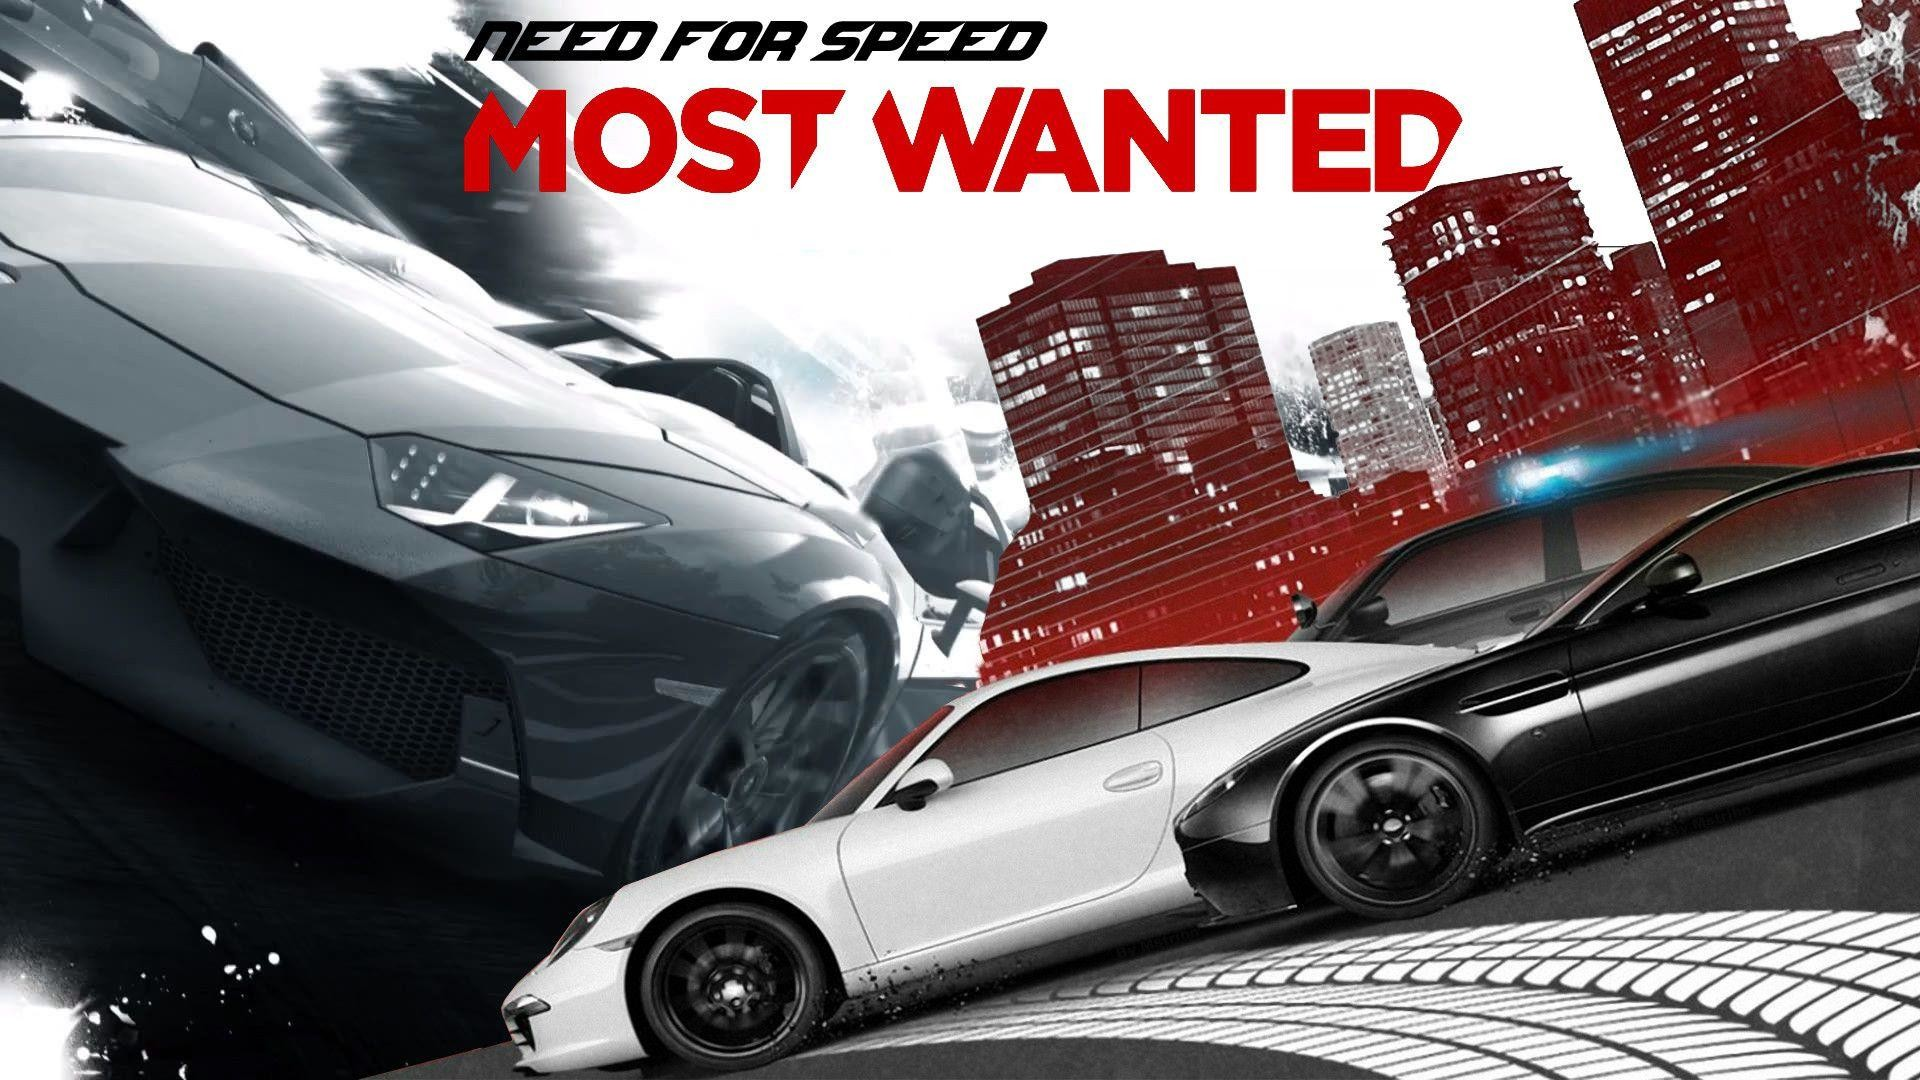 Most Wanted Wallpaper 72 Images